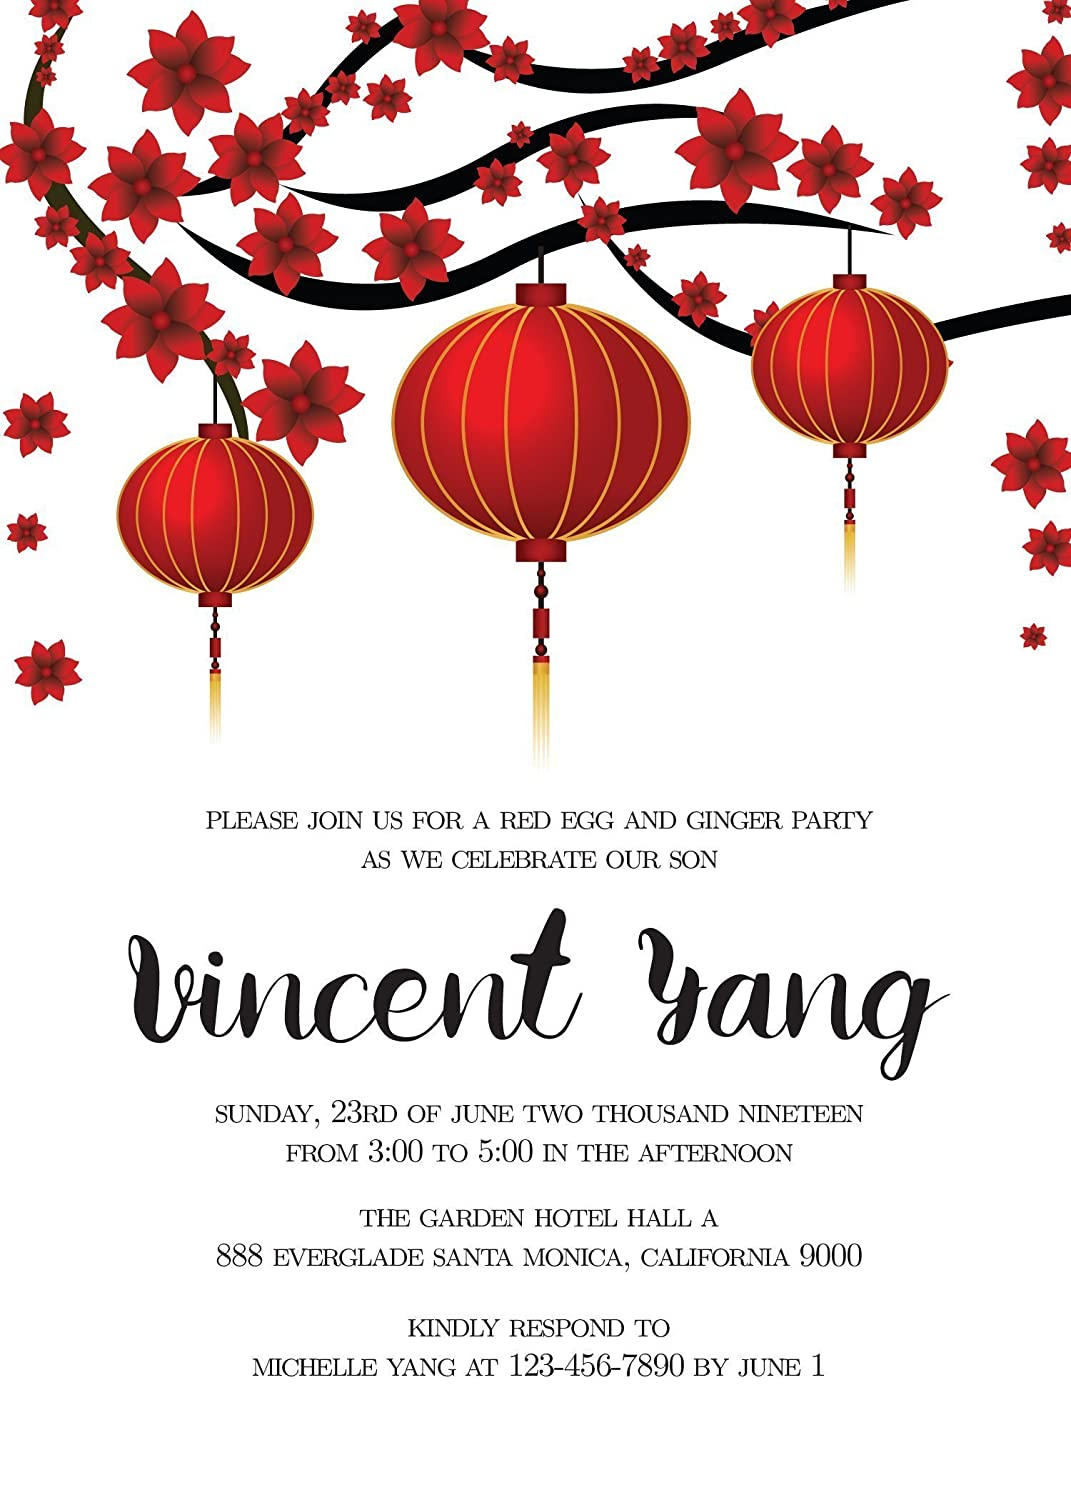 Amazon.com: Red Egg and Ginger Party Invitation Cards, Custom Party ...